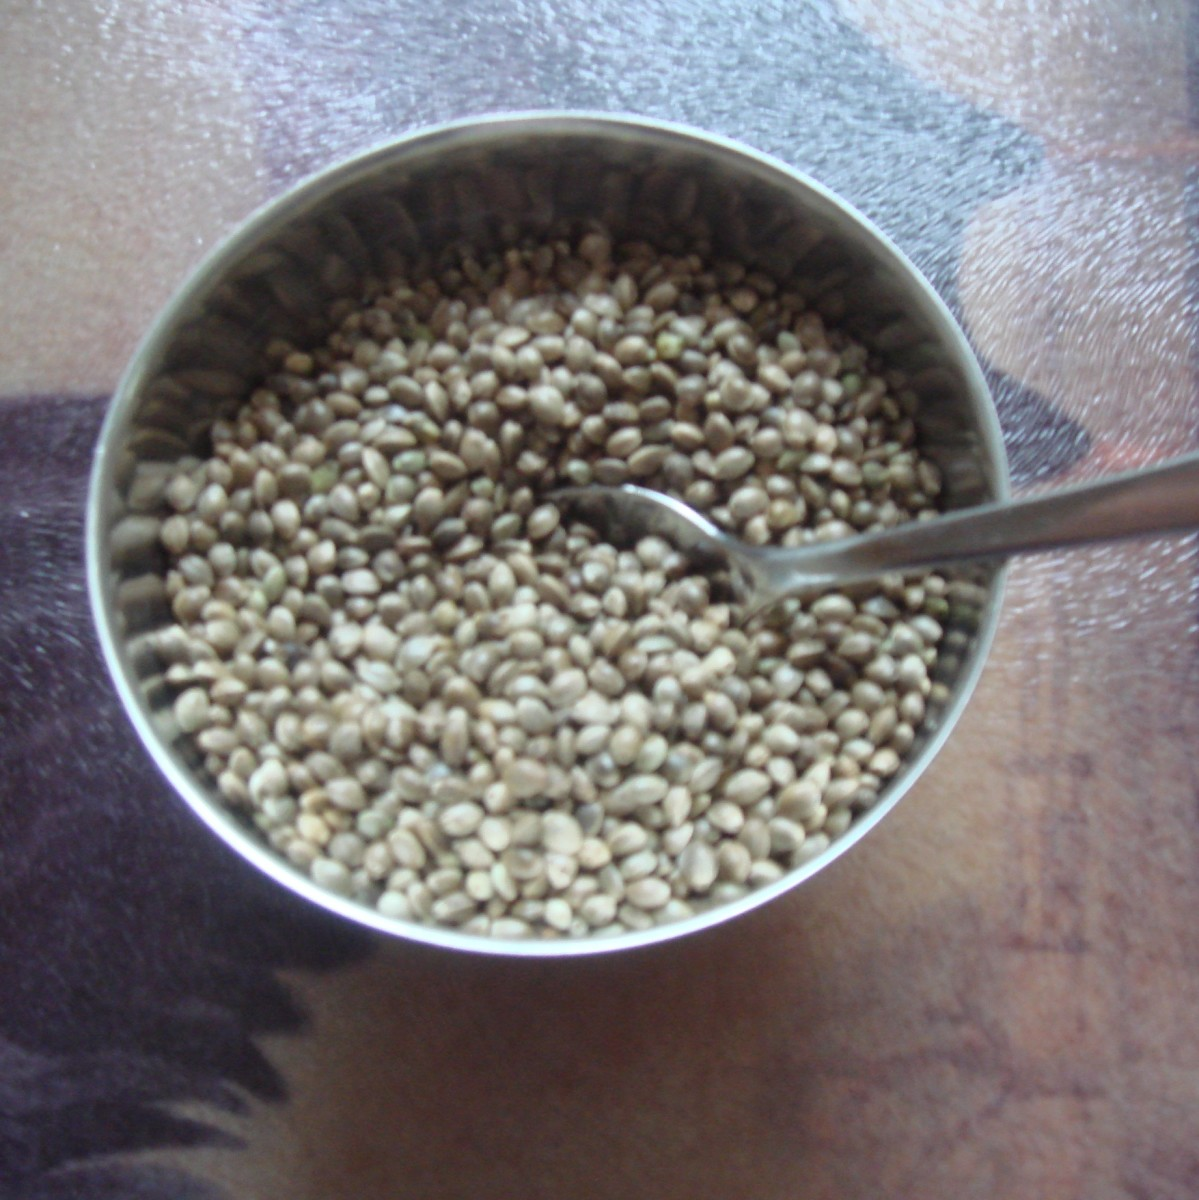 Hemp seeds are a complete protein and are considered a superfood.